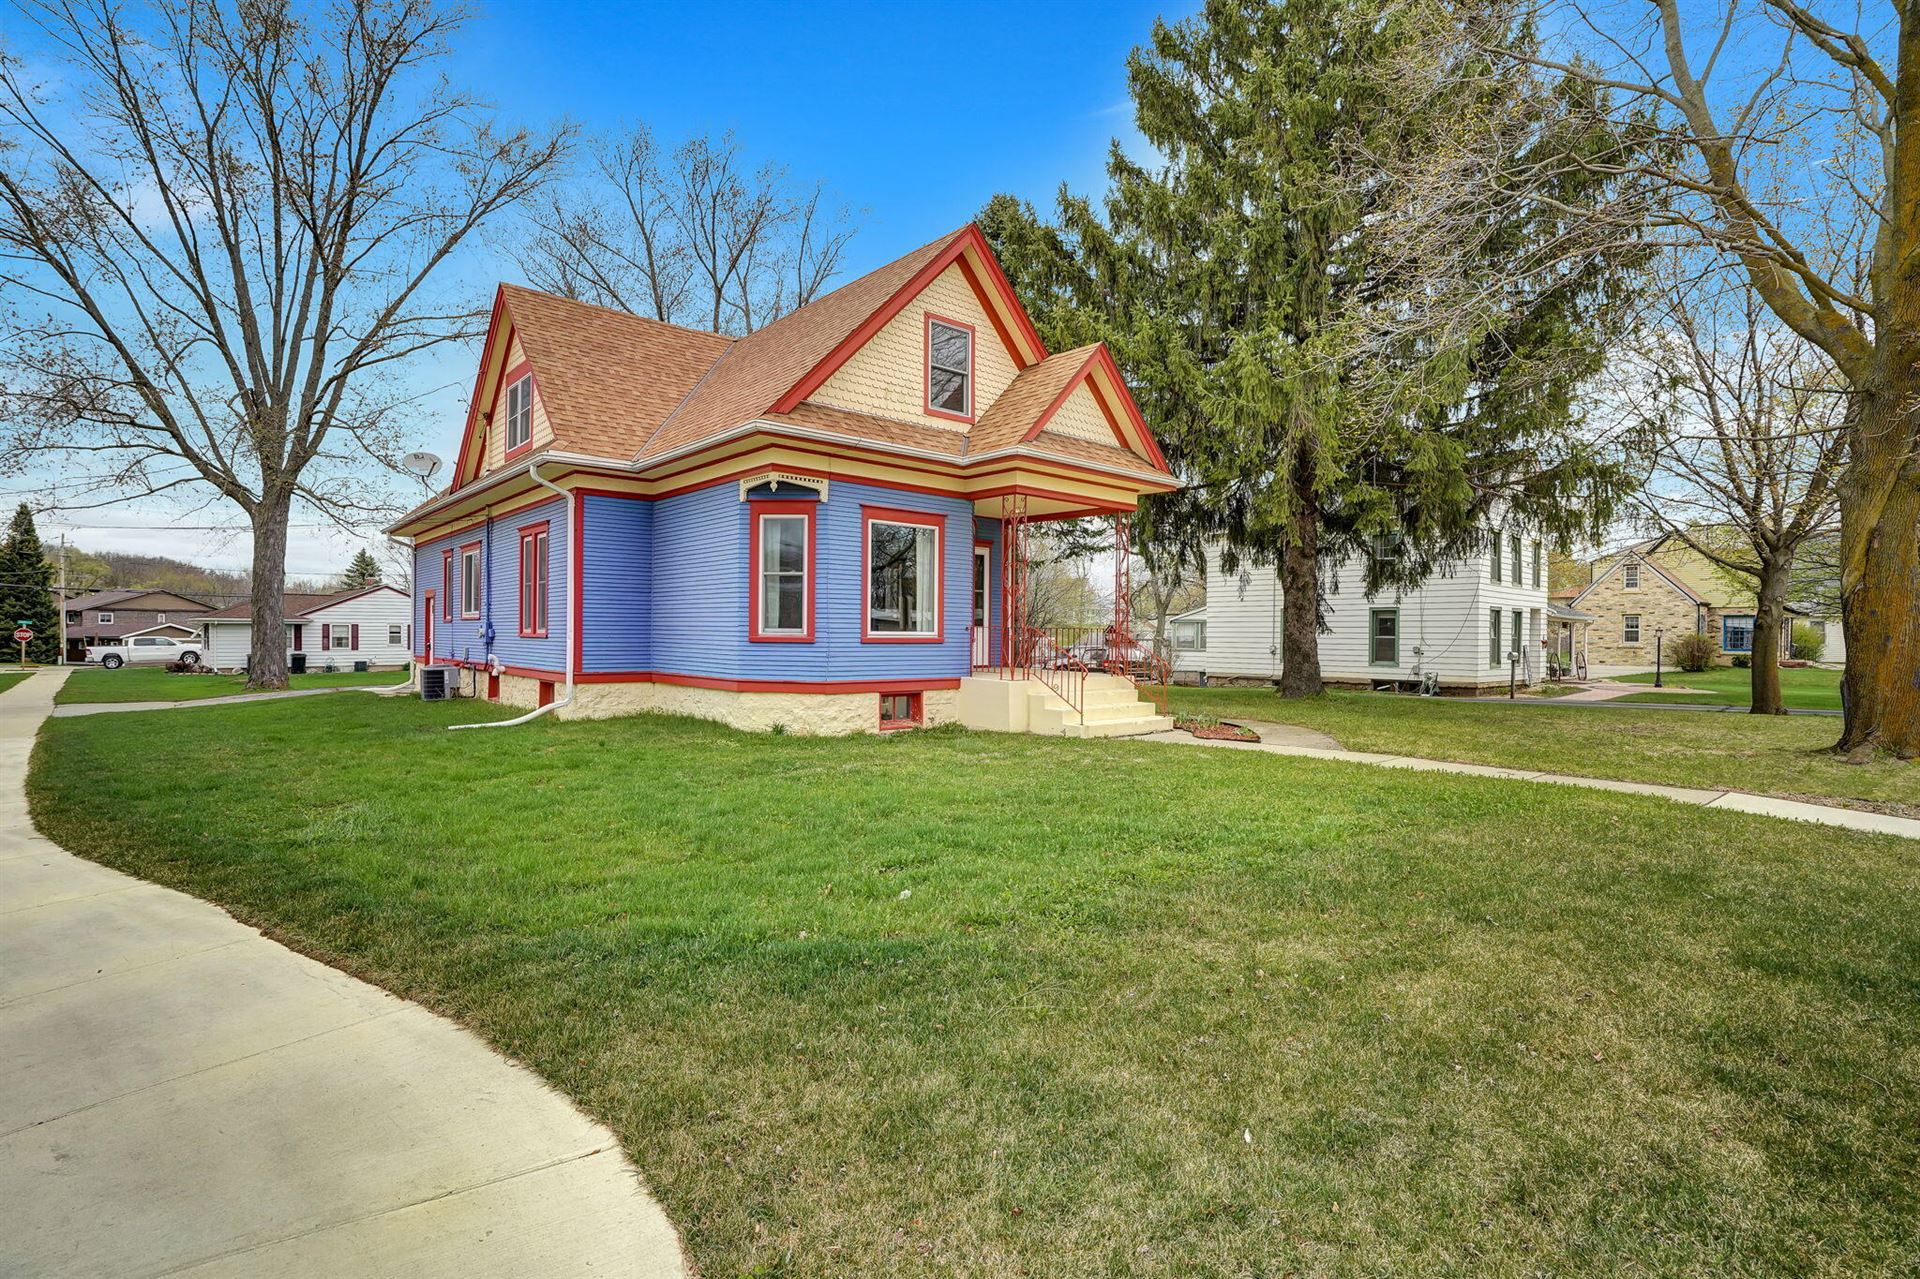 410 W Main St, Waterford, WI 53185 - #: 1735270